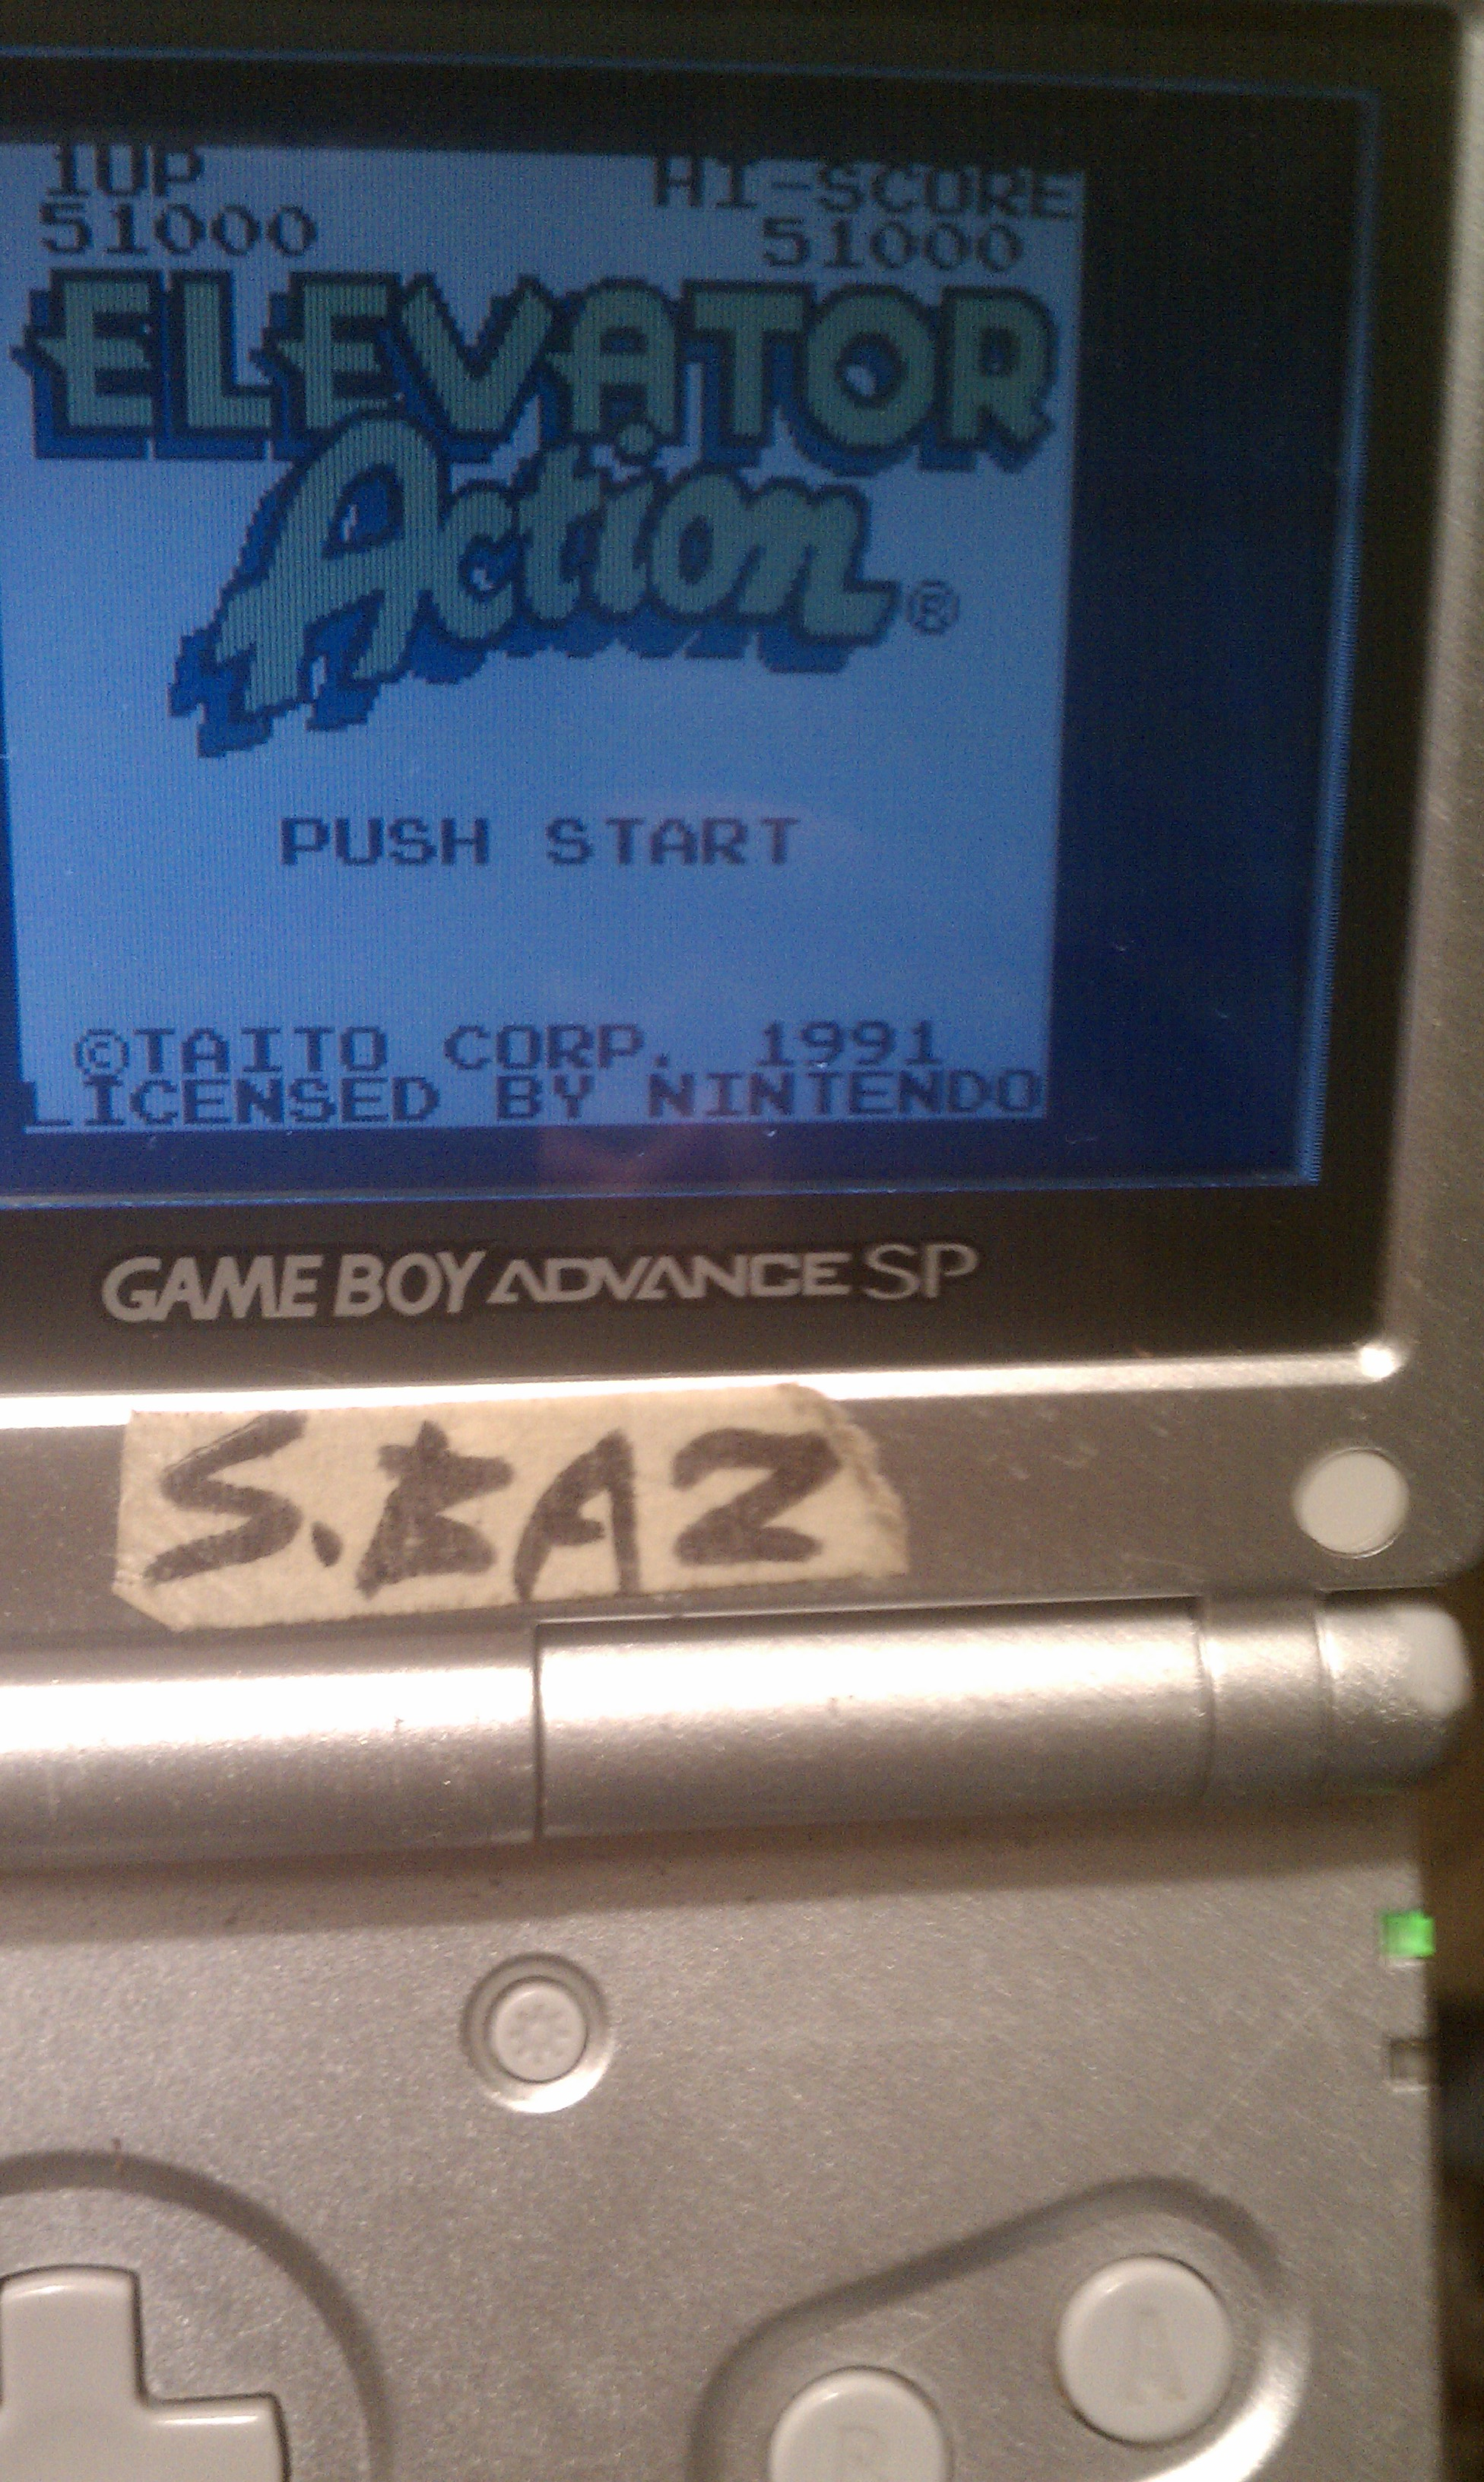 S.BAZ: Elevator Action (Game Boy Color) 51,000 points on 2016-07-26 02:08:14